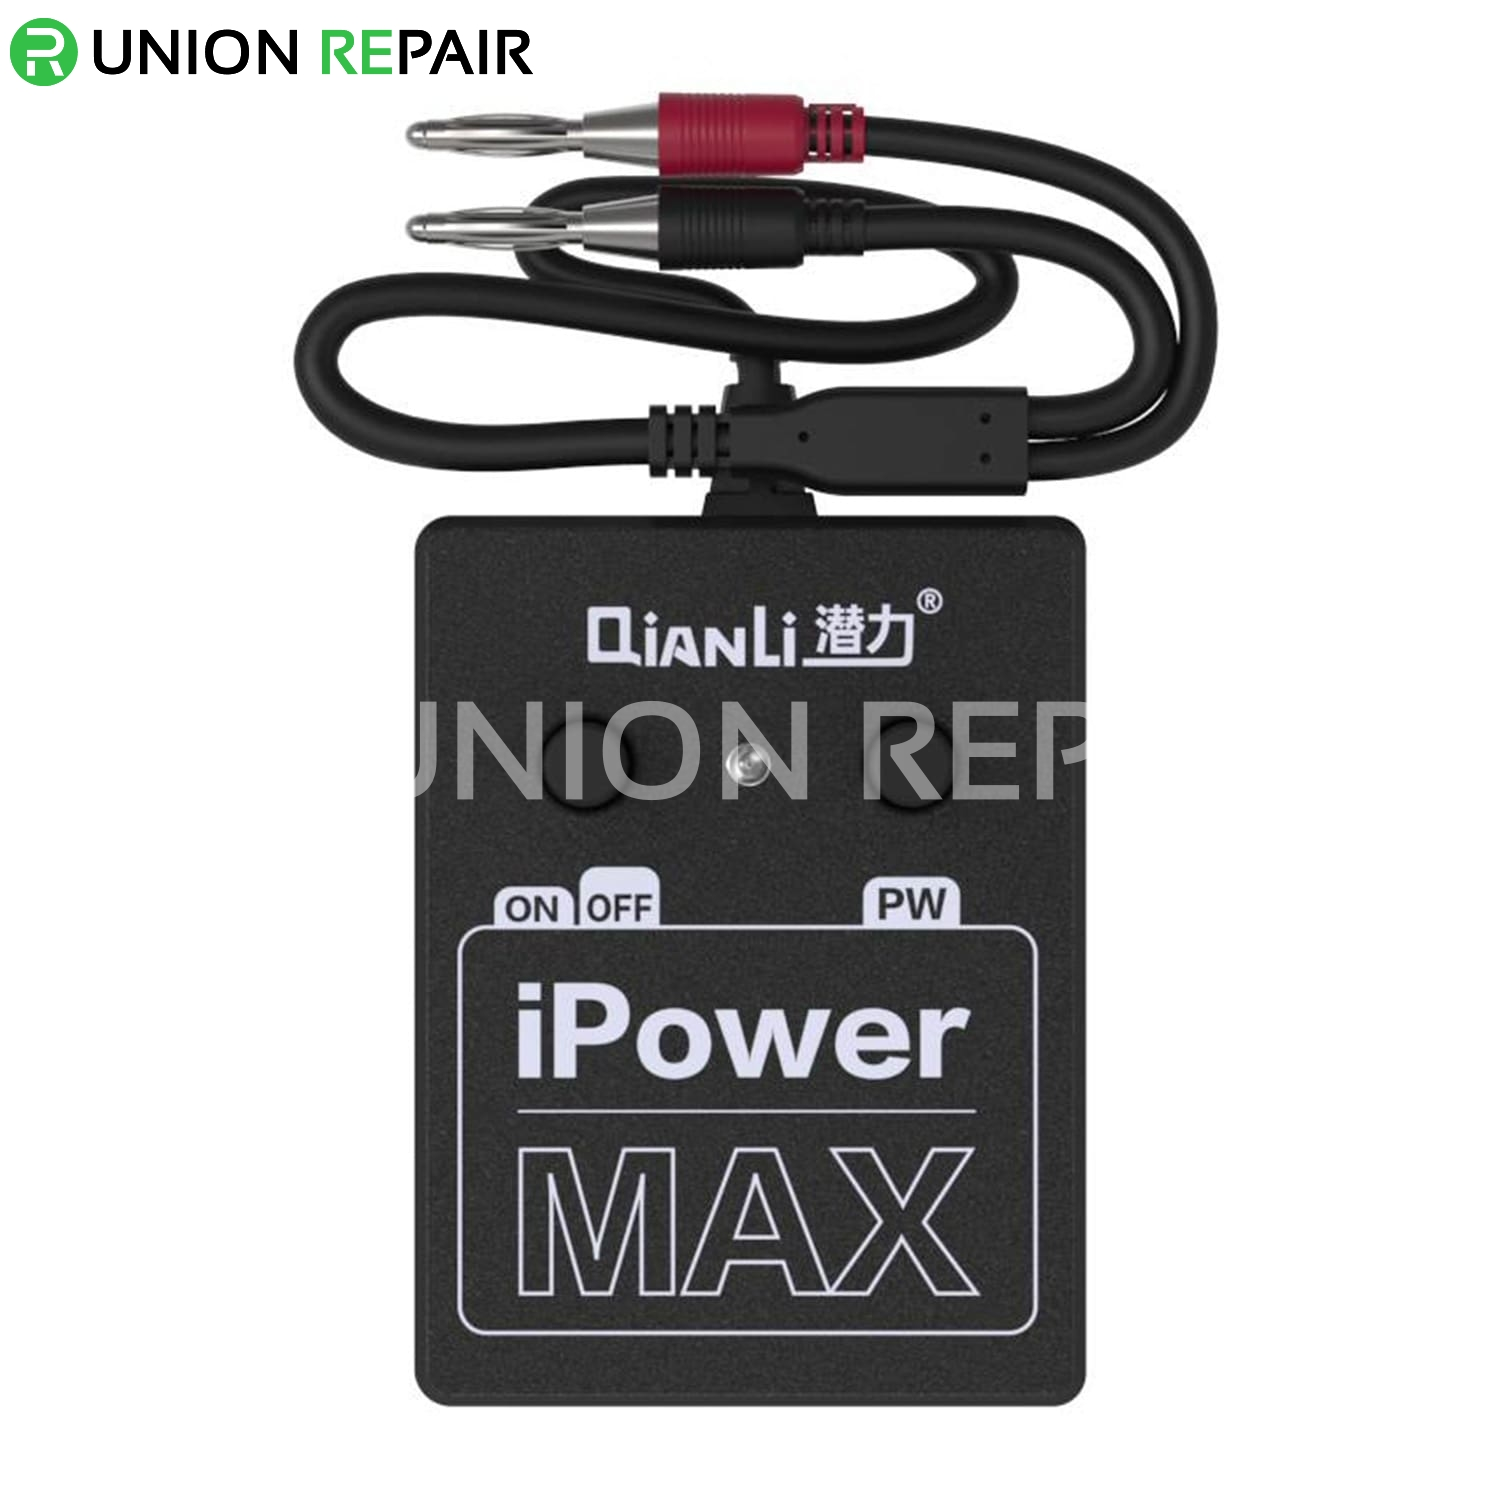 medium resolution of 17192 qianli toolplus power line with on off switch ipower max 1 jpg t 1559808754